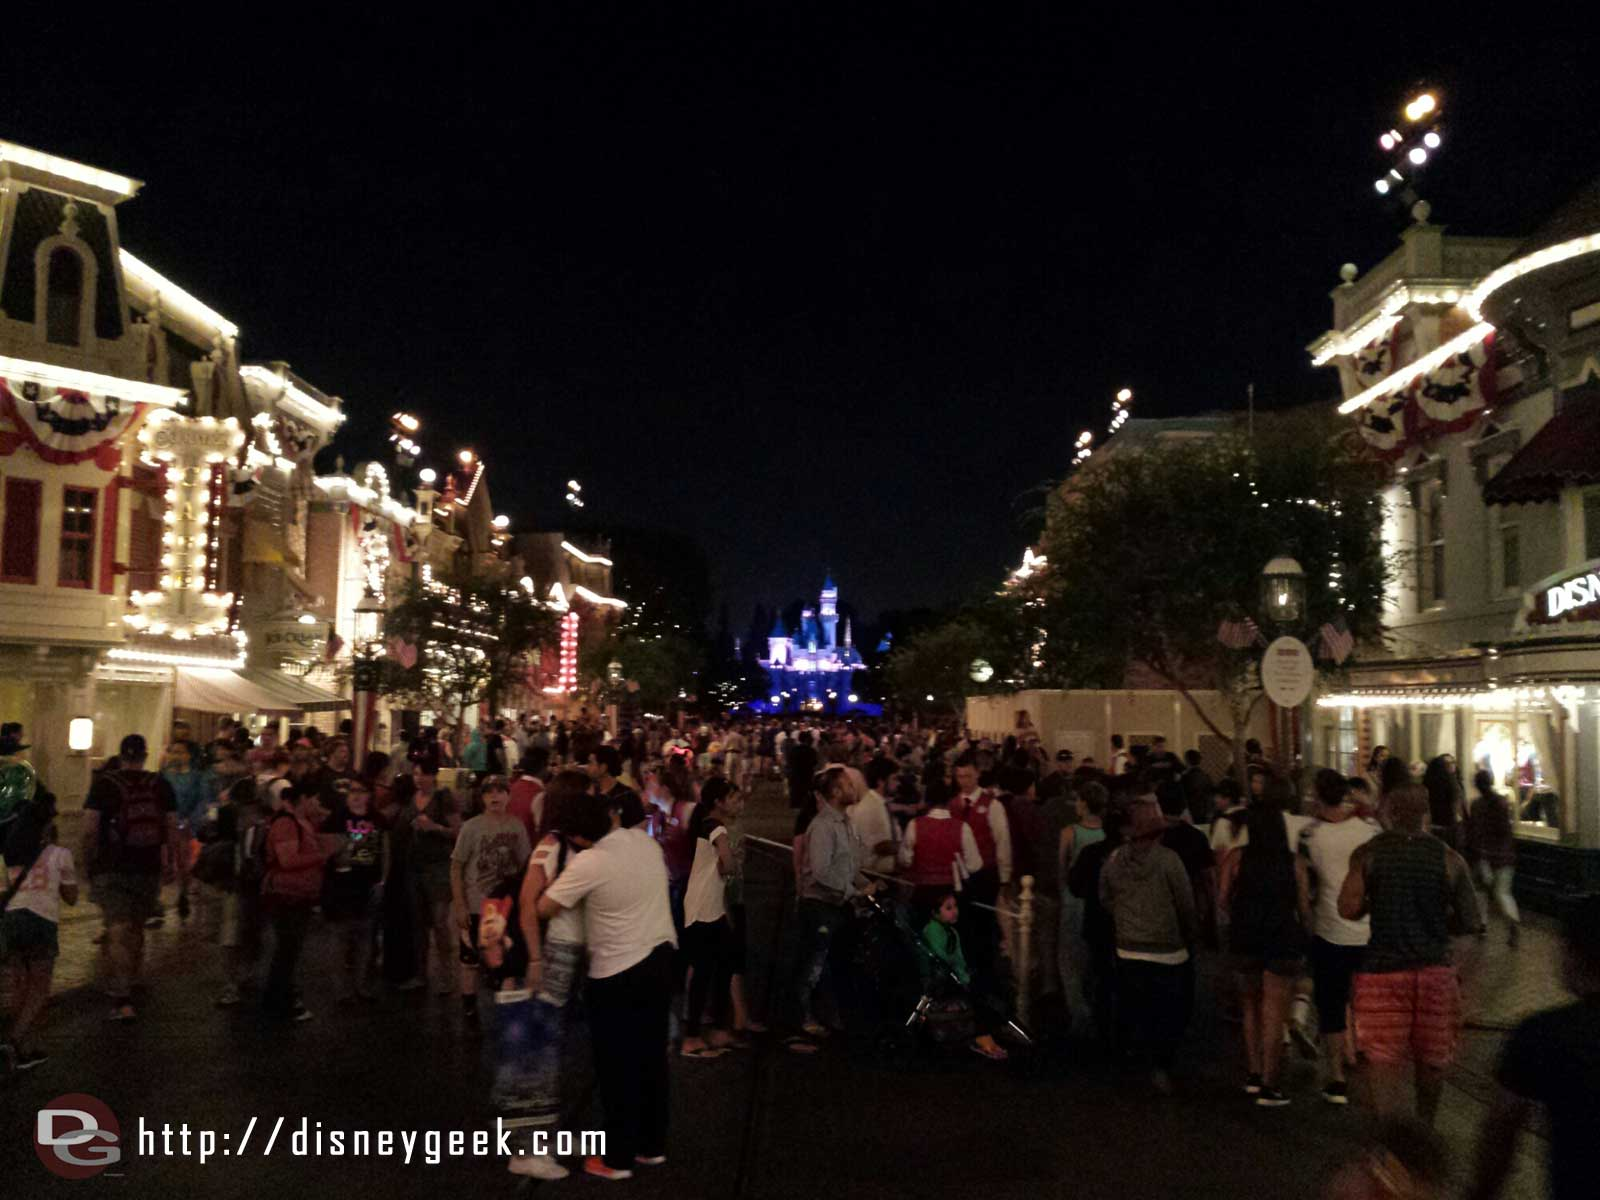 As I stepped onto Main Street they played the announcement that Magical may be cancelled due to winds tonight